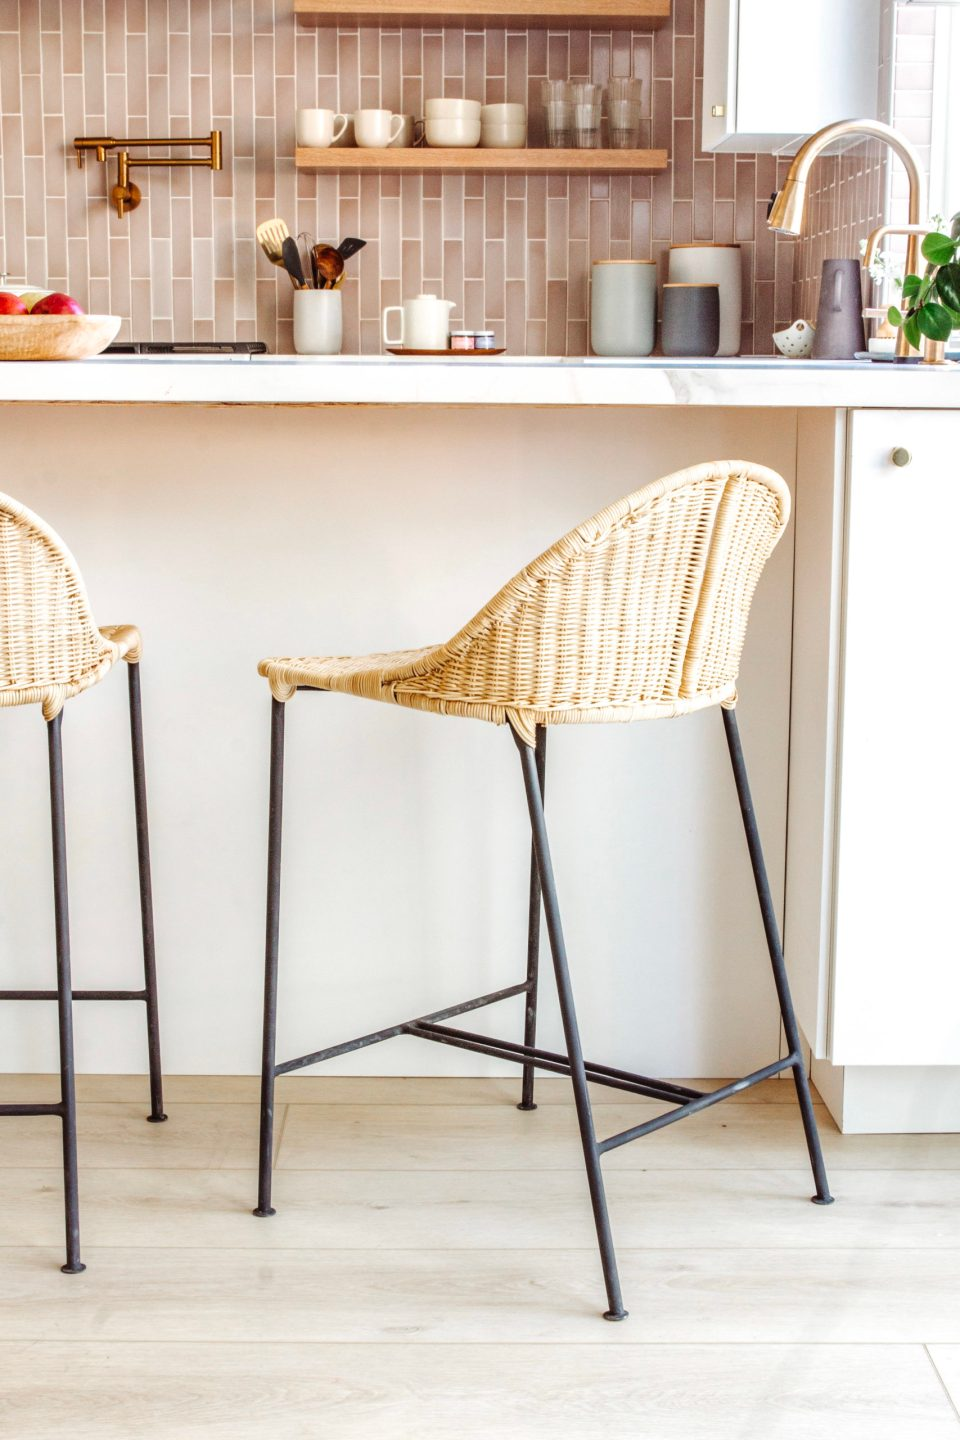 A rattan stool with matte black wire legs pulled up to the new peninsula